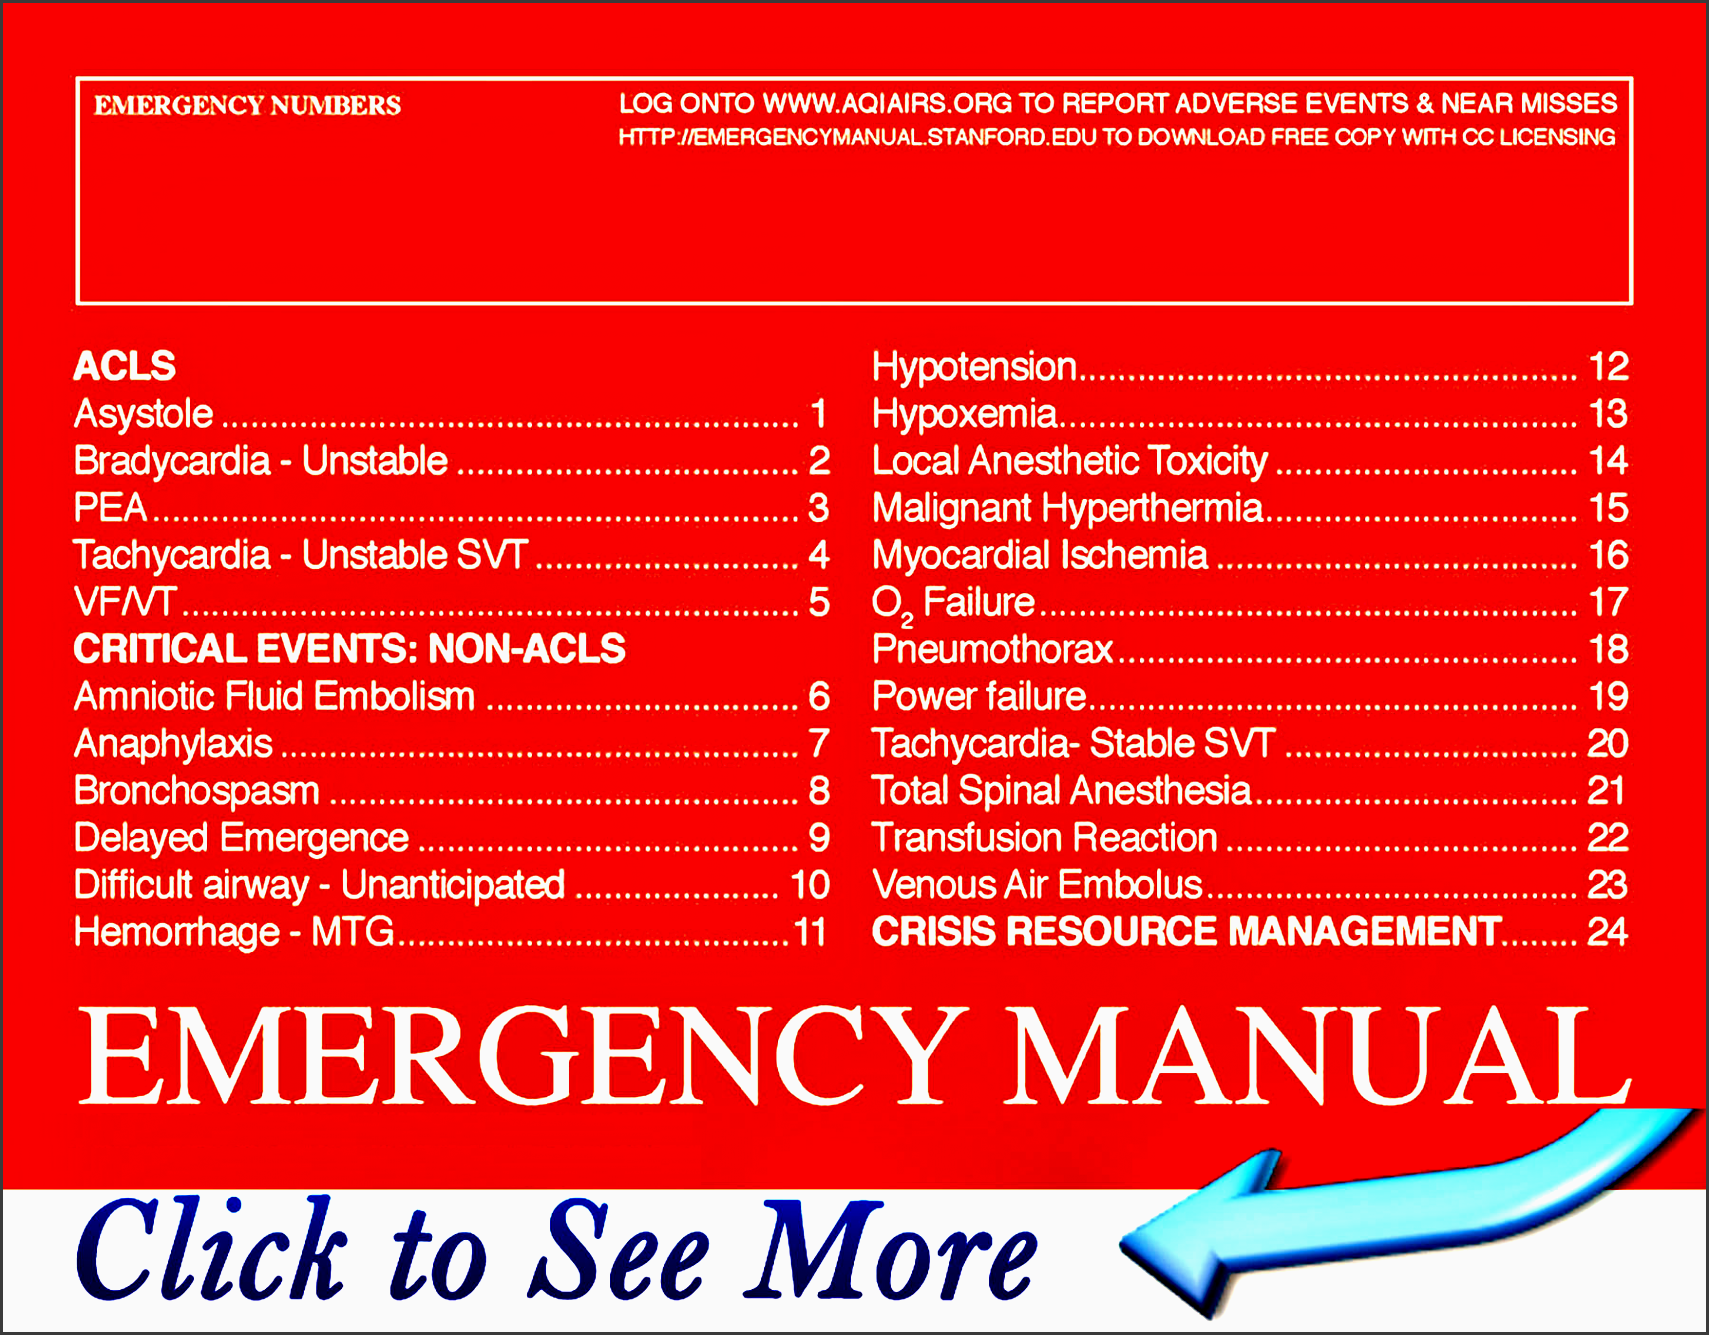 6 download free family emergency plan template here - sampletemplatess